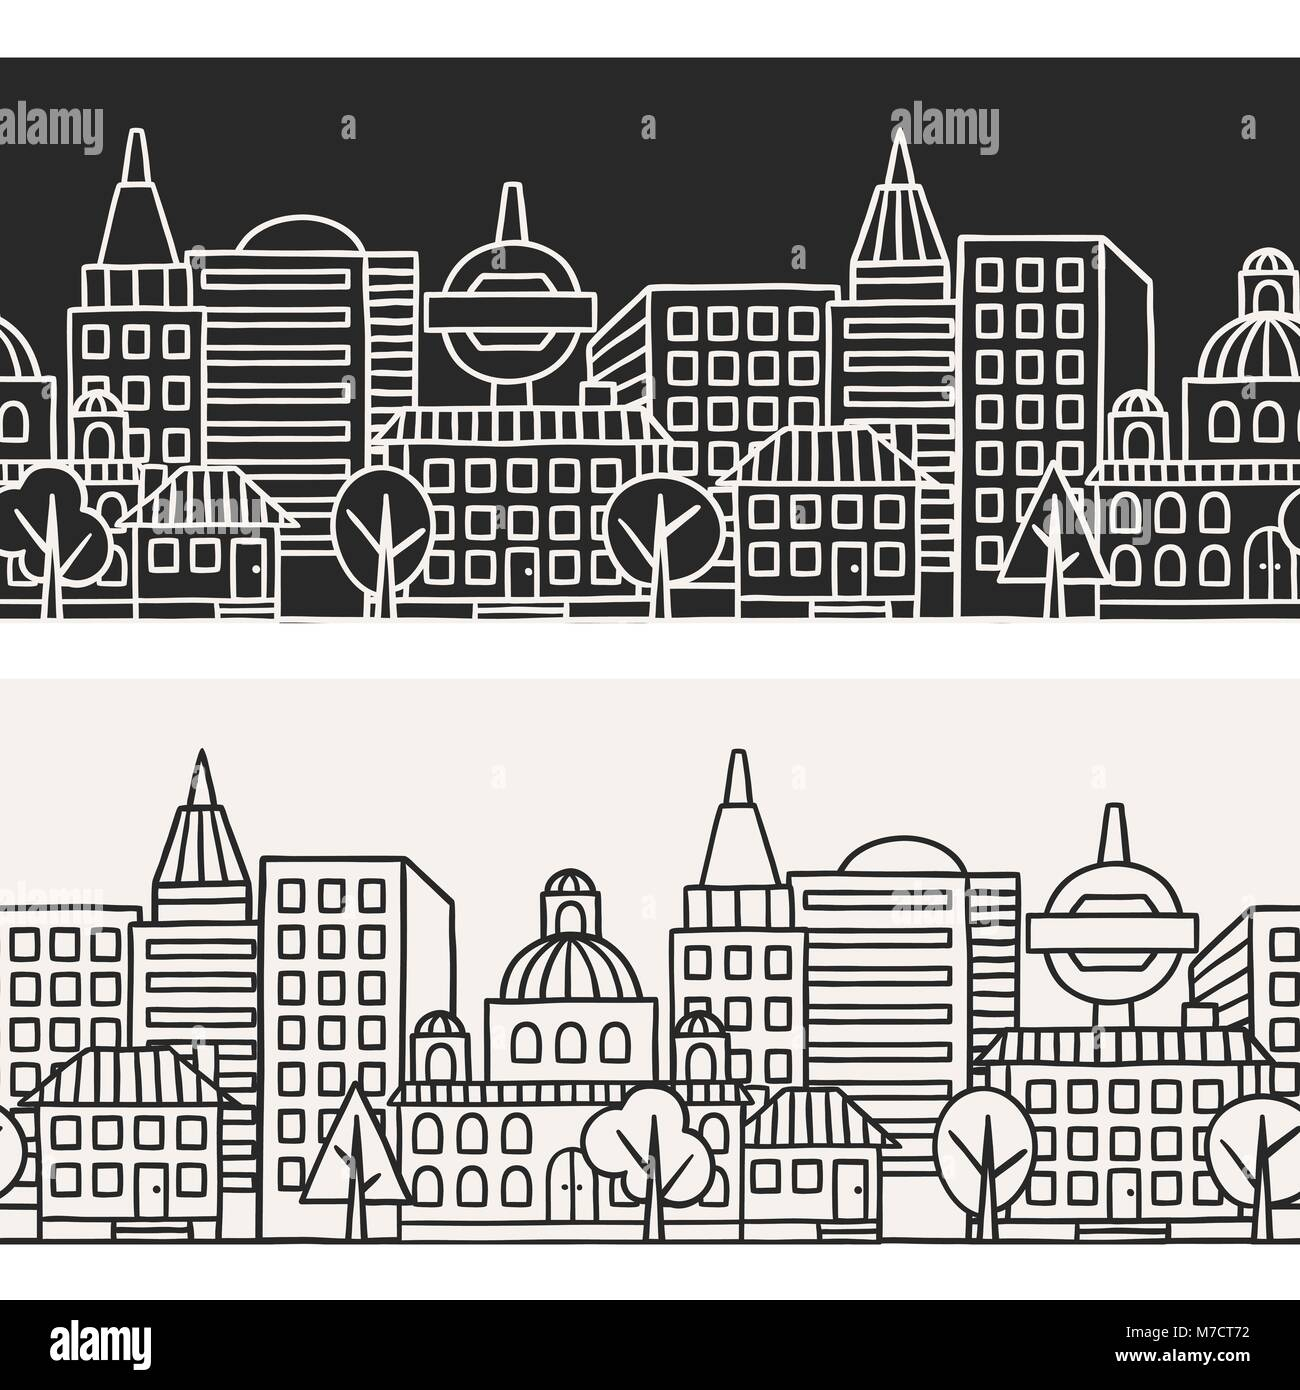 Town seamless pattern with hand drawn houses - Stock Image